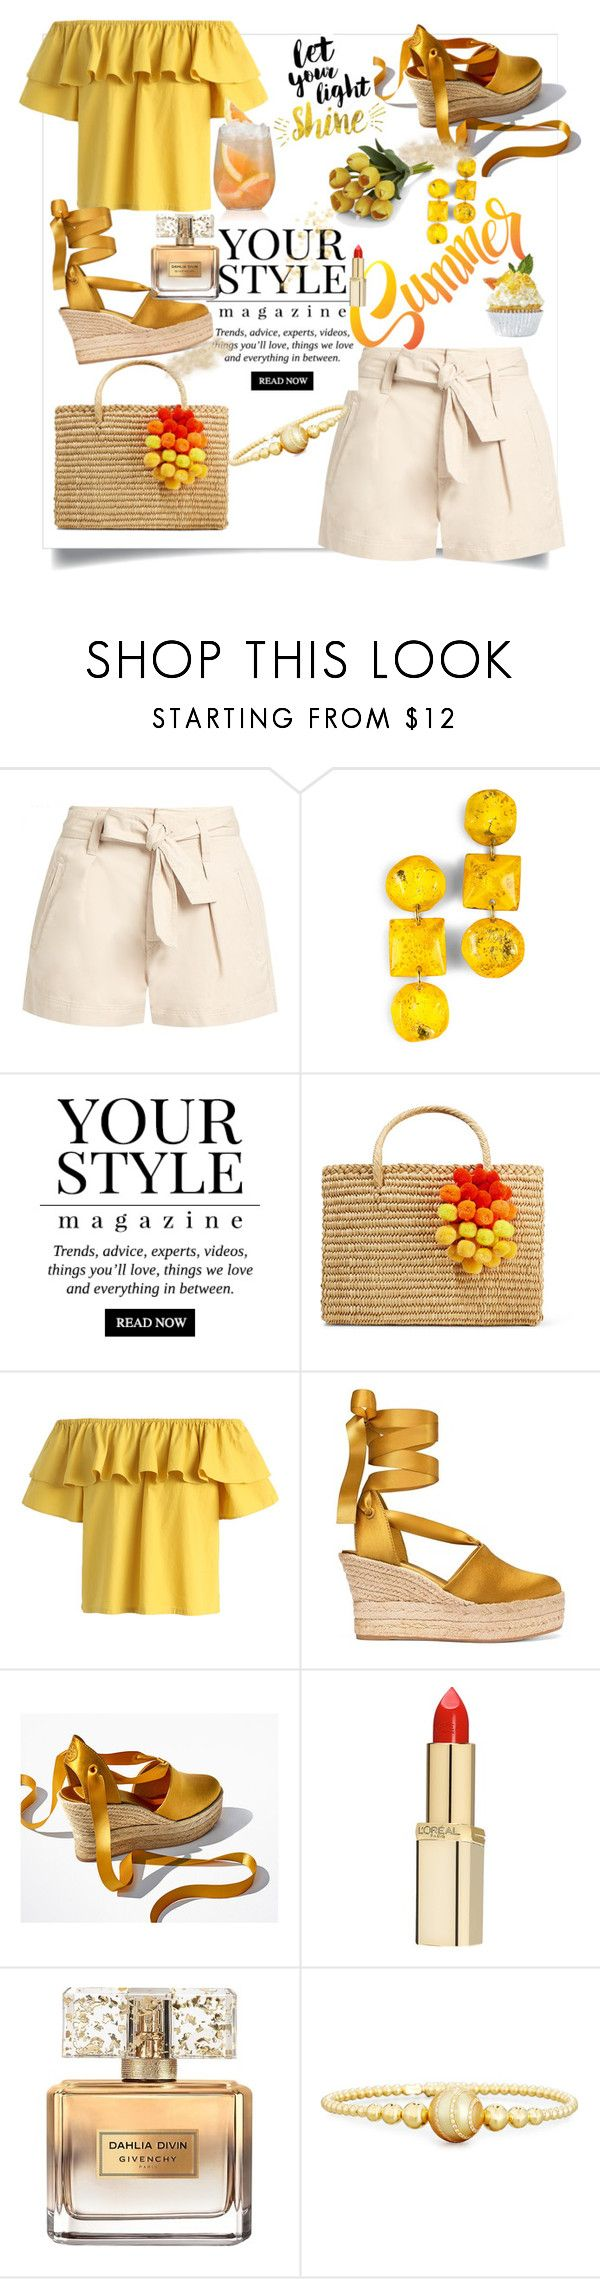 """""""Summer Simmer Time  🍸🍹🍦🏝🏖🌞🌞💕💕"""" by kercey ❤ liked on Polyvore featuring Étoile Isabel Marant, Pussycat, Nannacay, Chicwish, Tory Burch, L'Oréal Paris, Givenchy, Rivière and Crate and Barrel"""